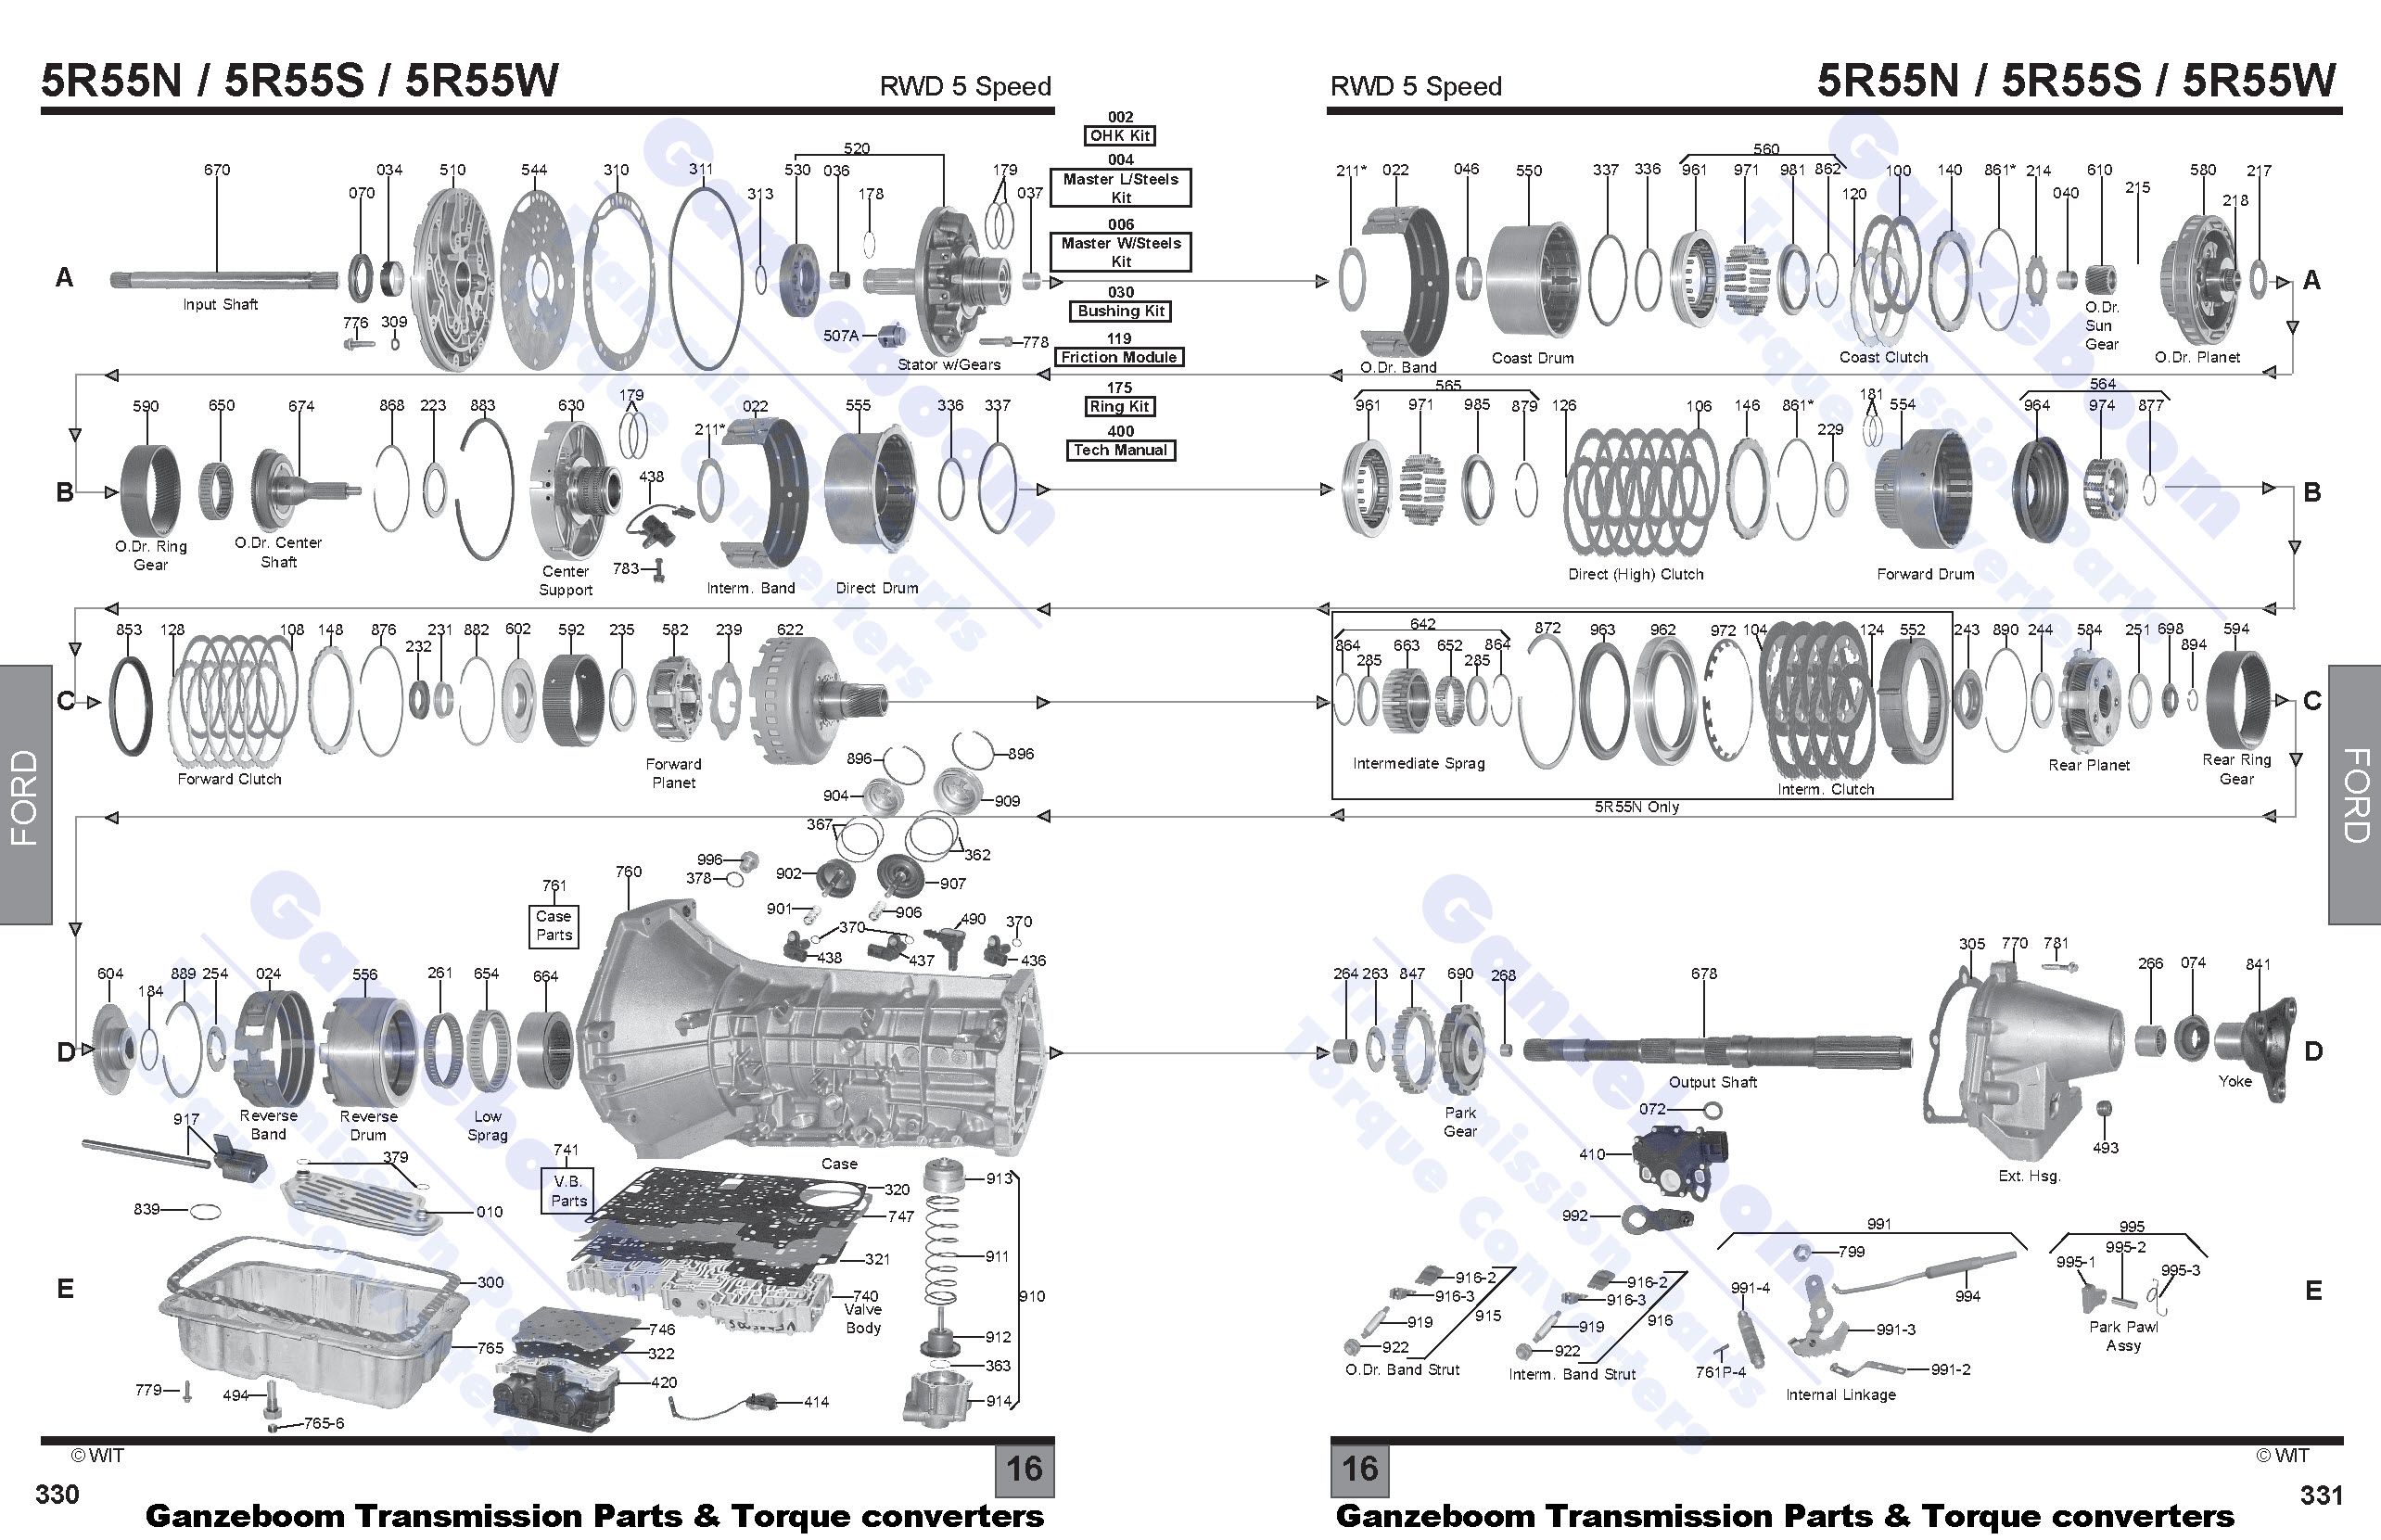 5r55w Diagram Basic Wiring Schematic 5r55e Ford Ganzeboom Transmission 5r55n 5r55s